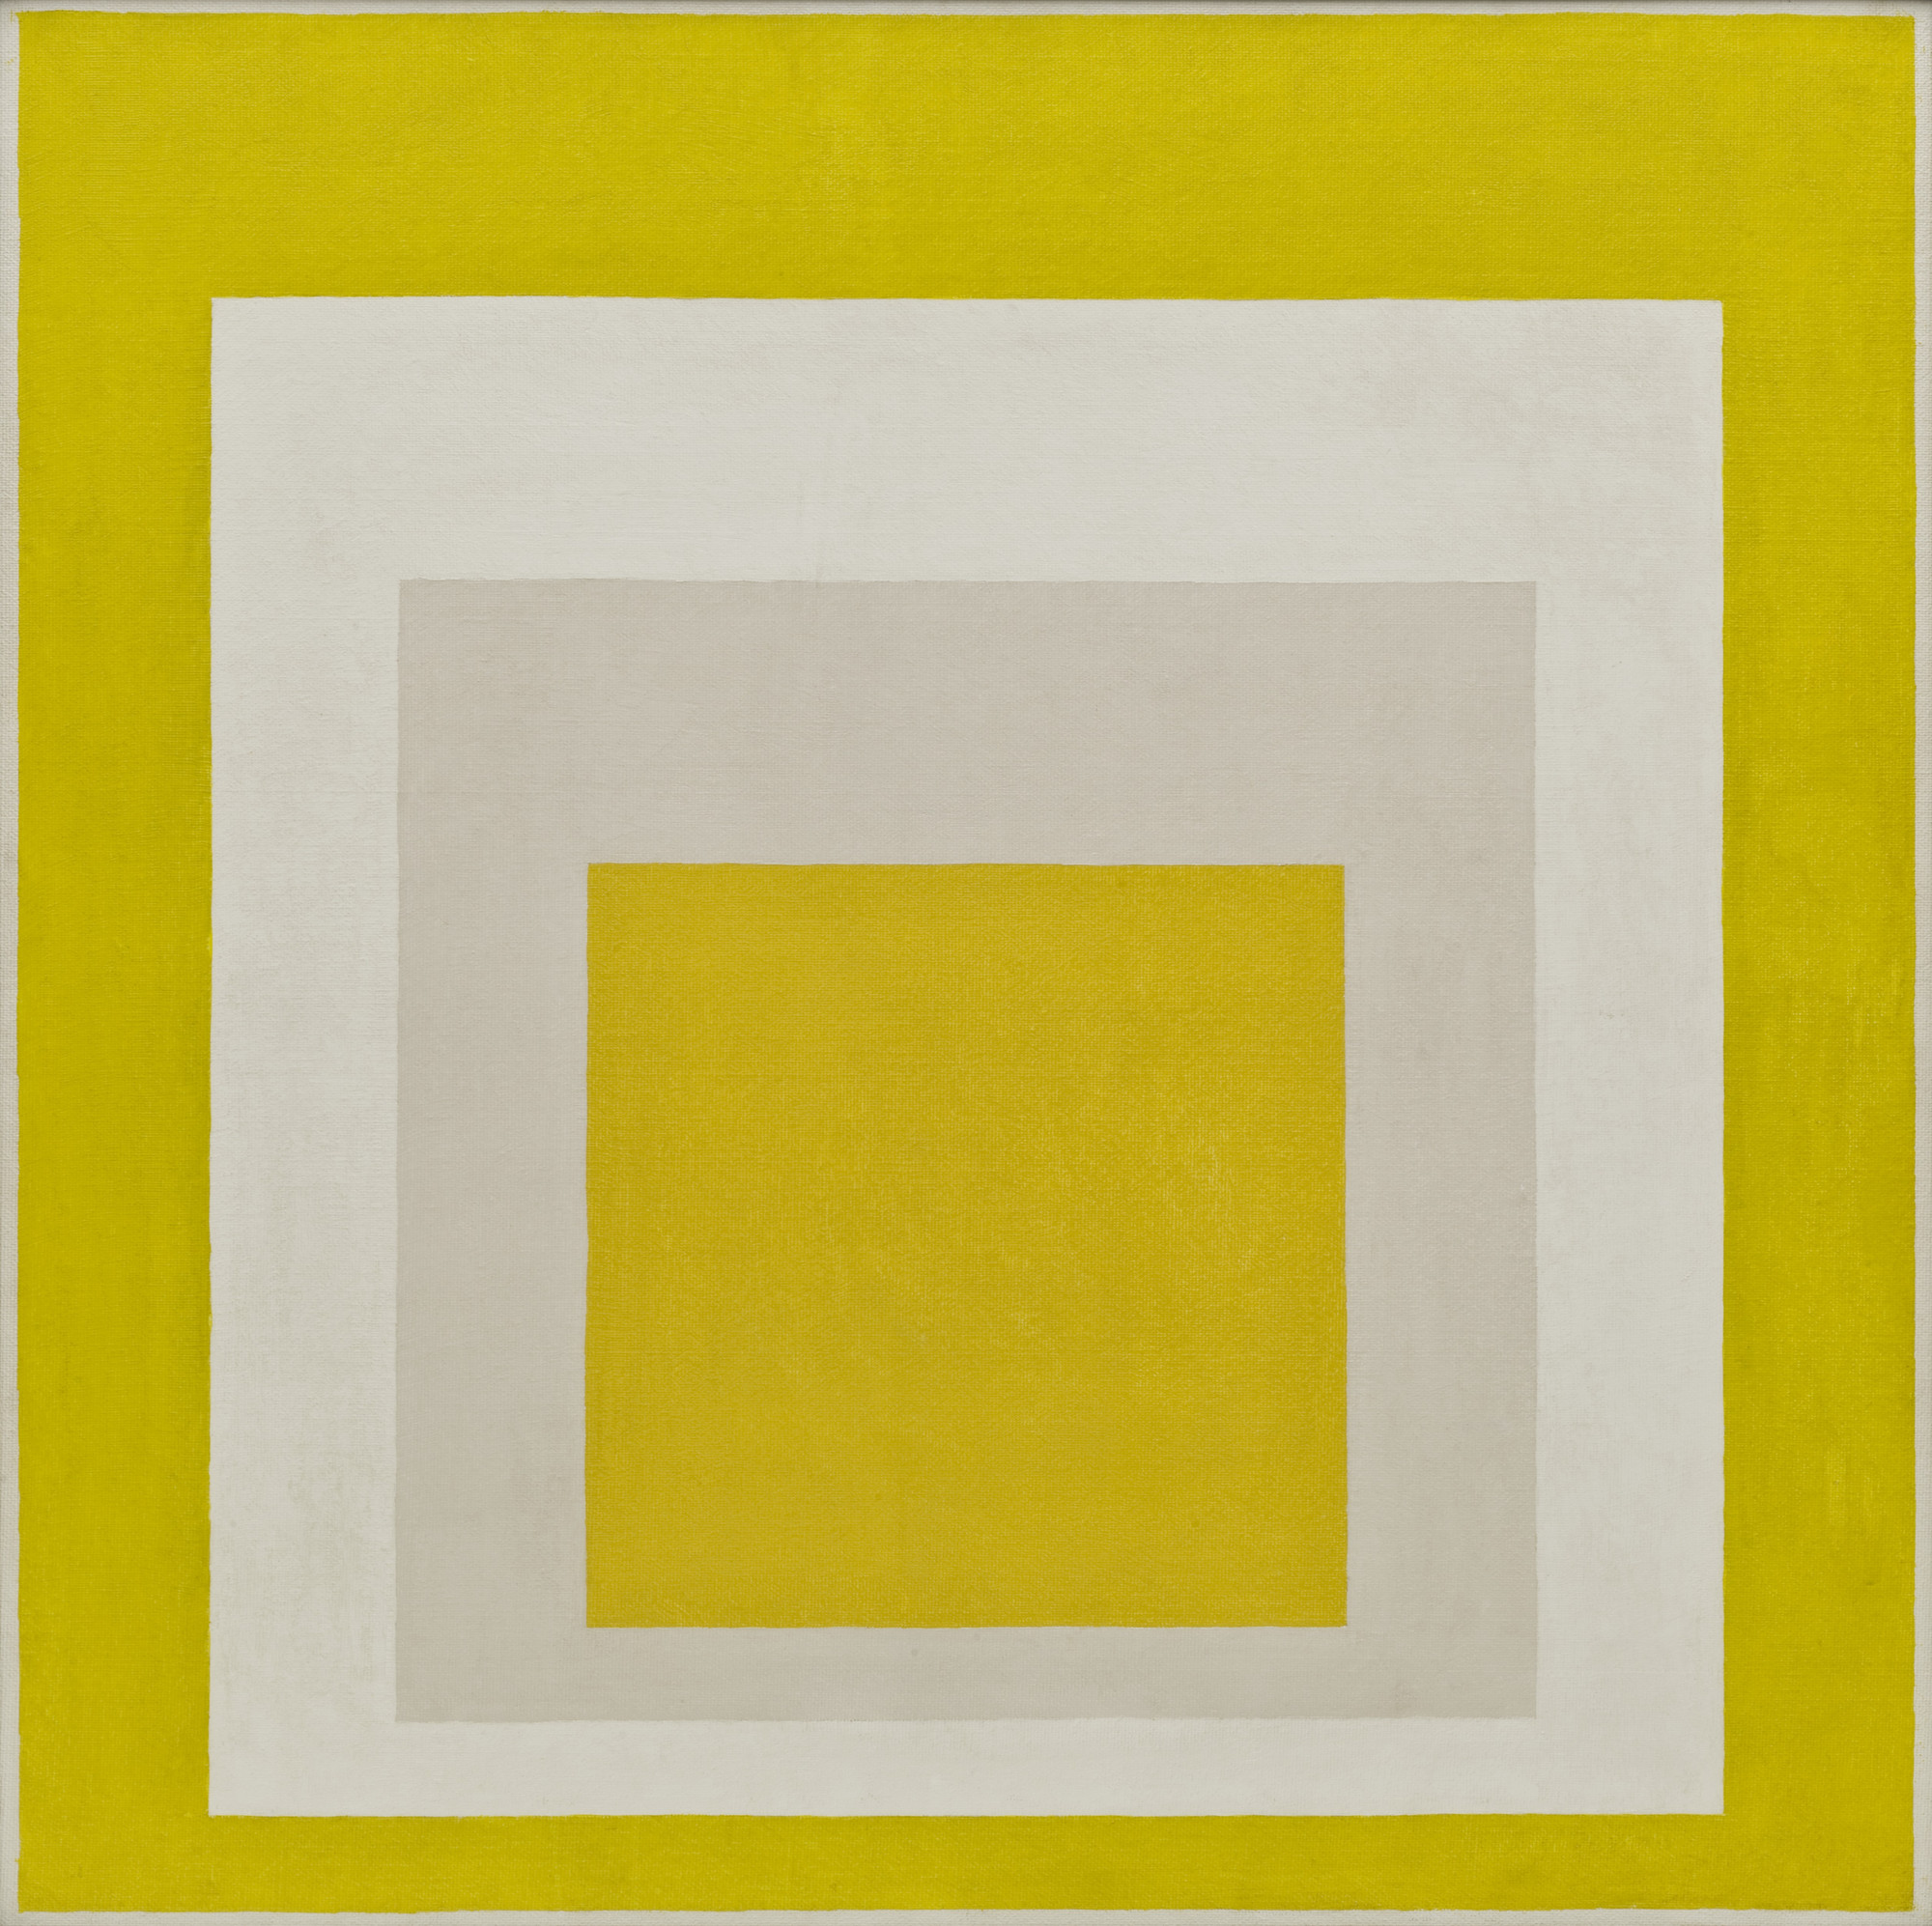 Josef Albers. Homage to the Square: Two Whites Between Two Yellows. 1958